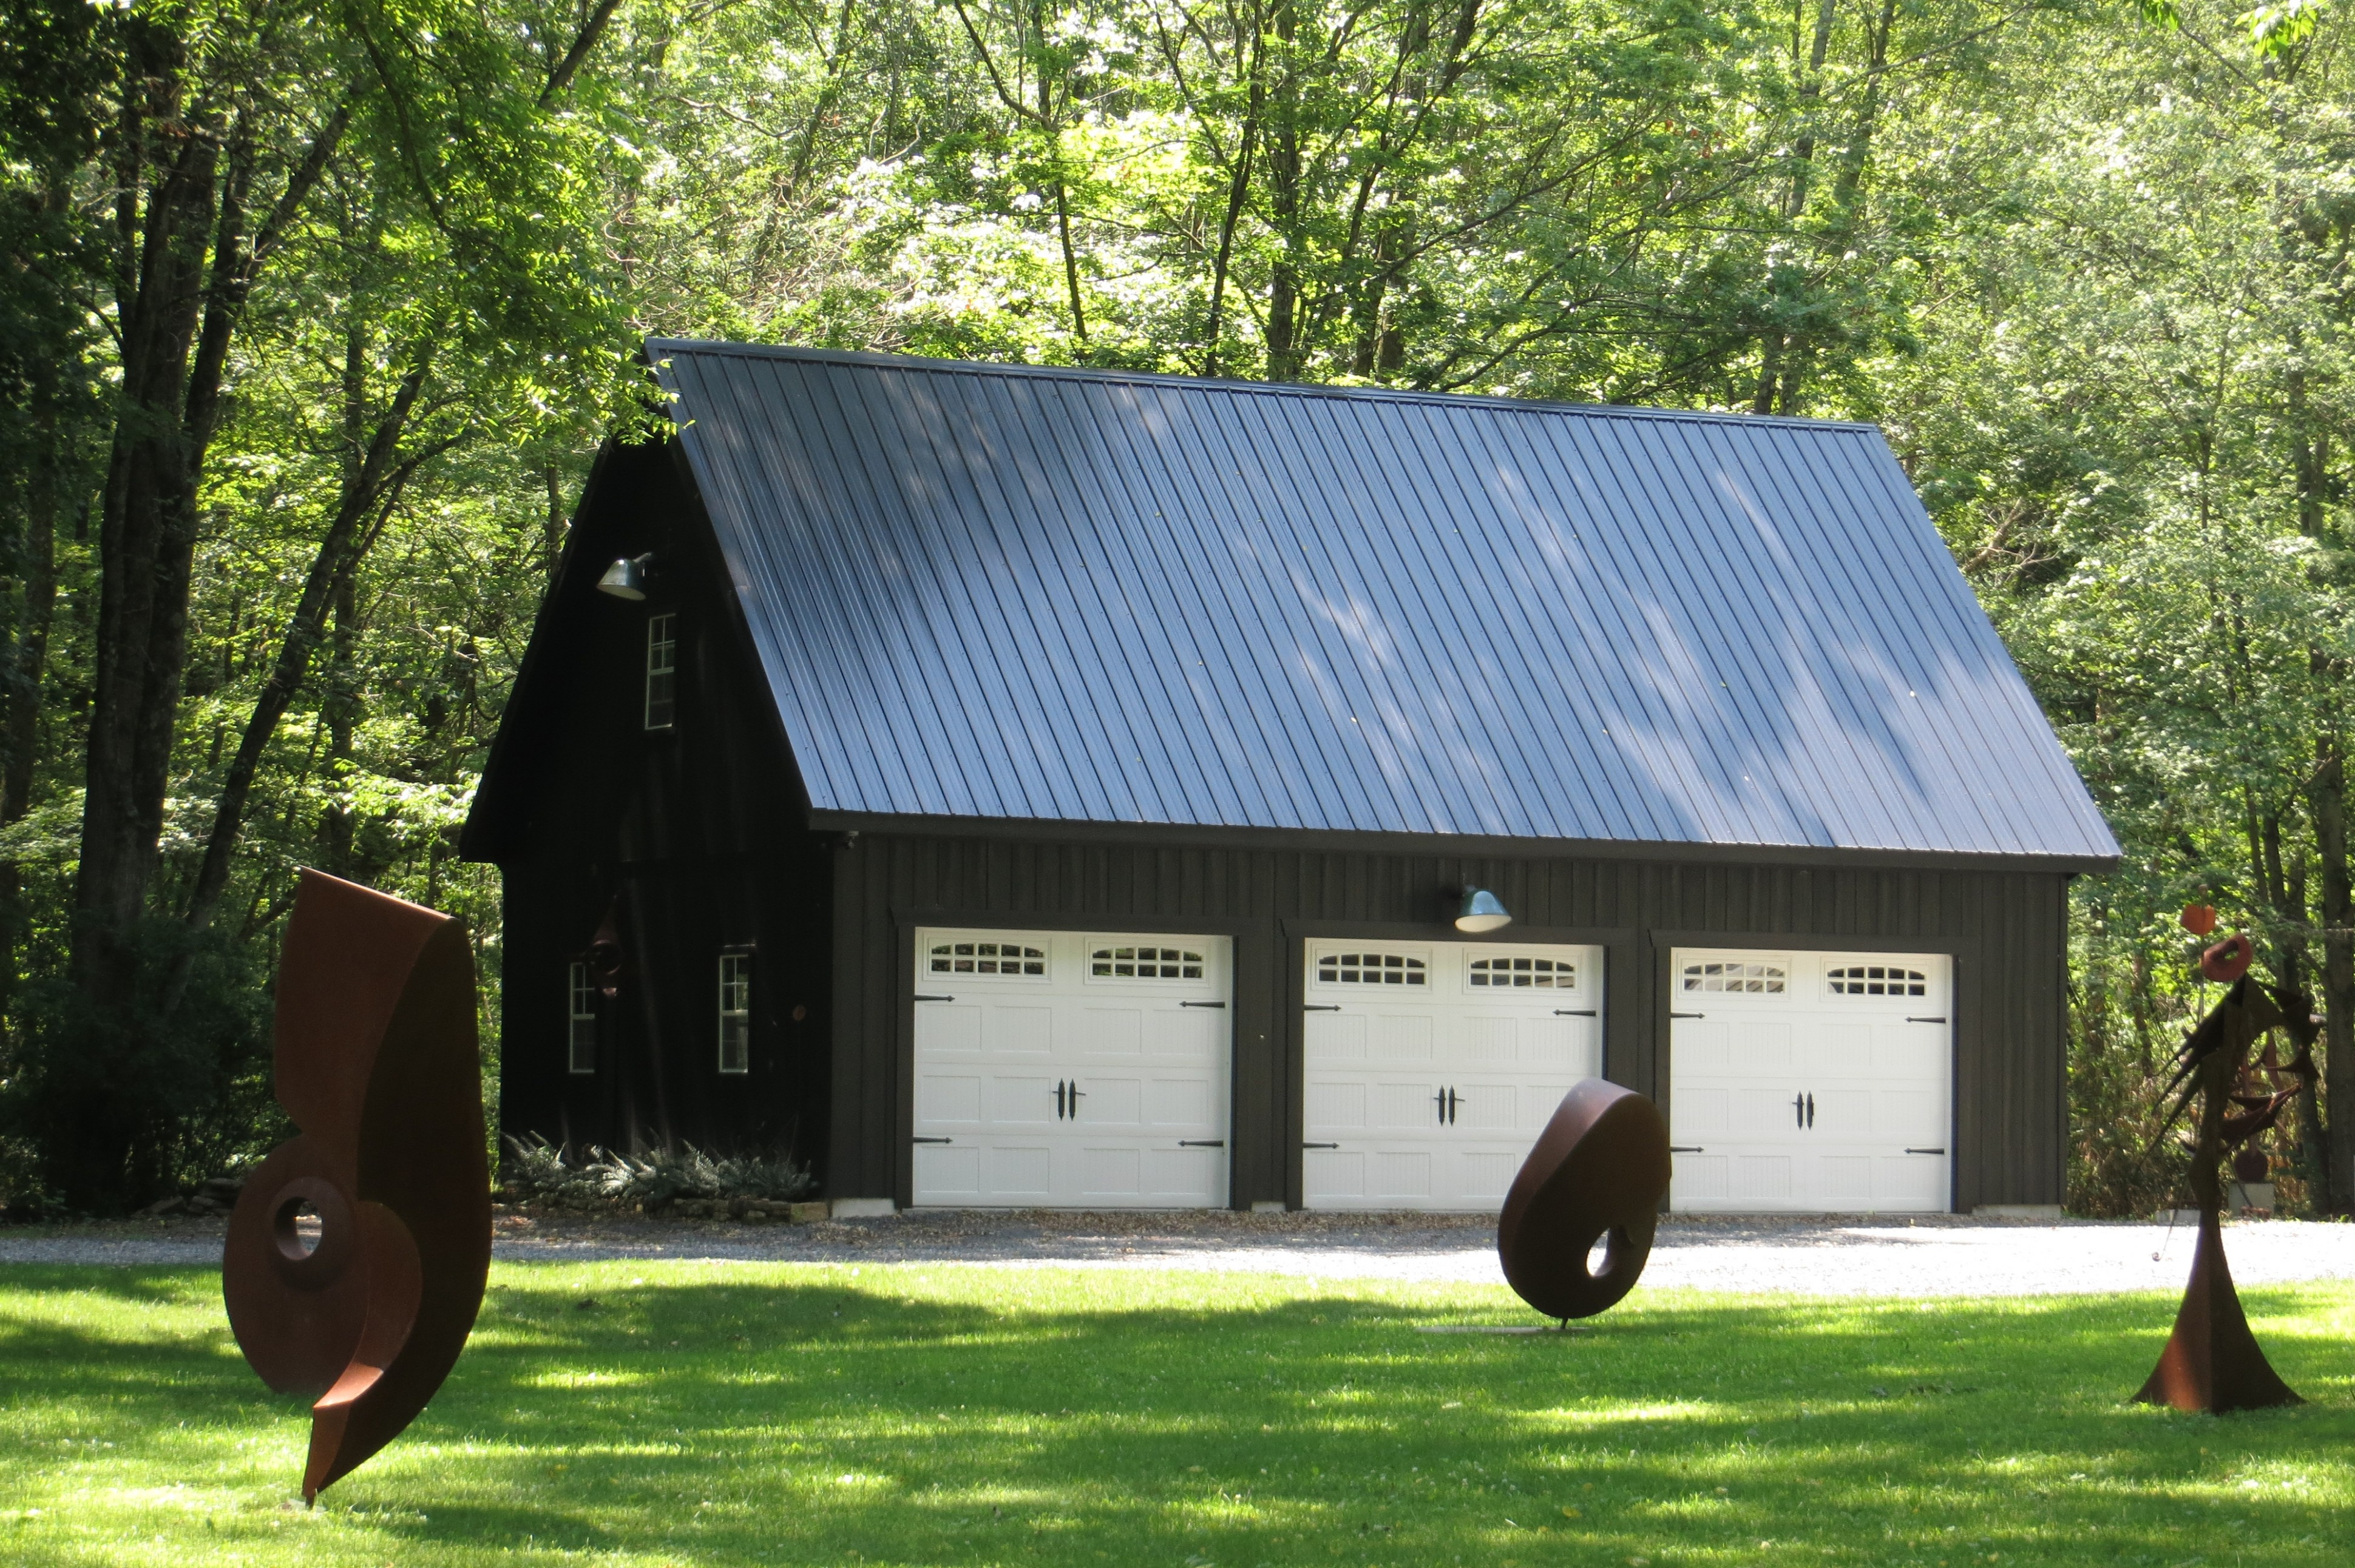 1517728308-portable-garages-and-attic-car-garages-on-end-of-the-year-discount-portable-metal-car-garage.jpg